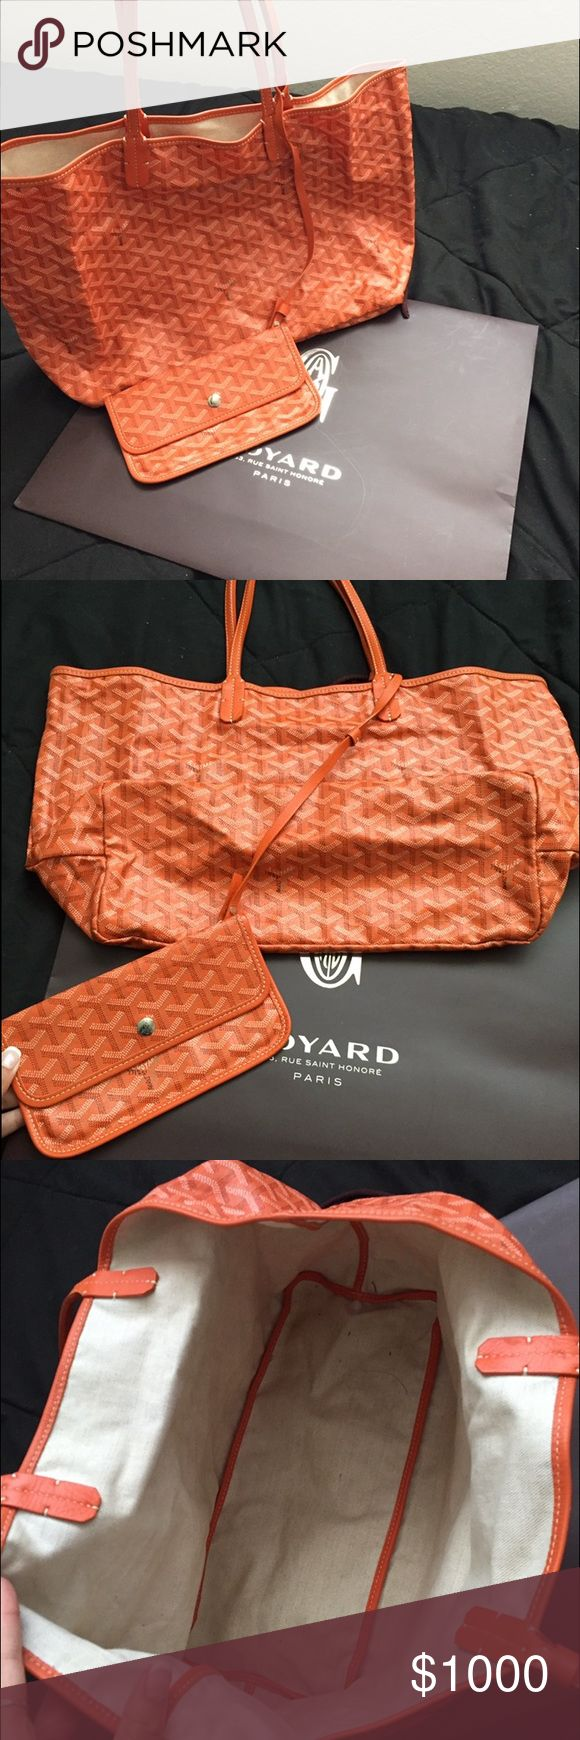 Orange Goyard bag with wallet Very good condition Authentic Goyard bag with wallet! PM size and bright orange. I am selling this for my cousin so I am not trading. Thank you Goyard Bags Shoulder Bags